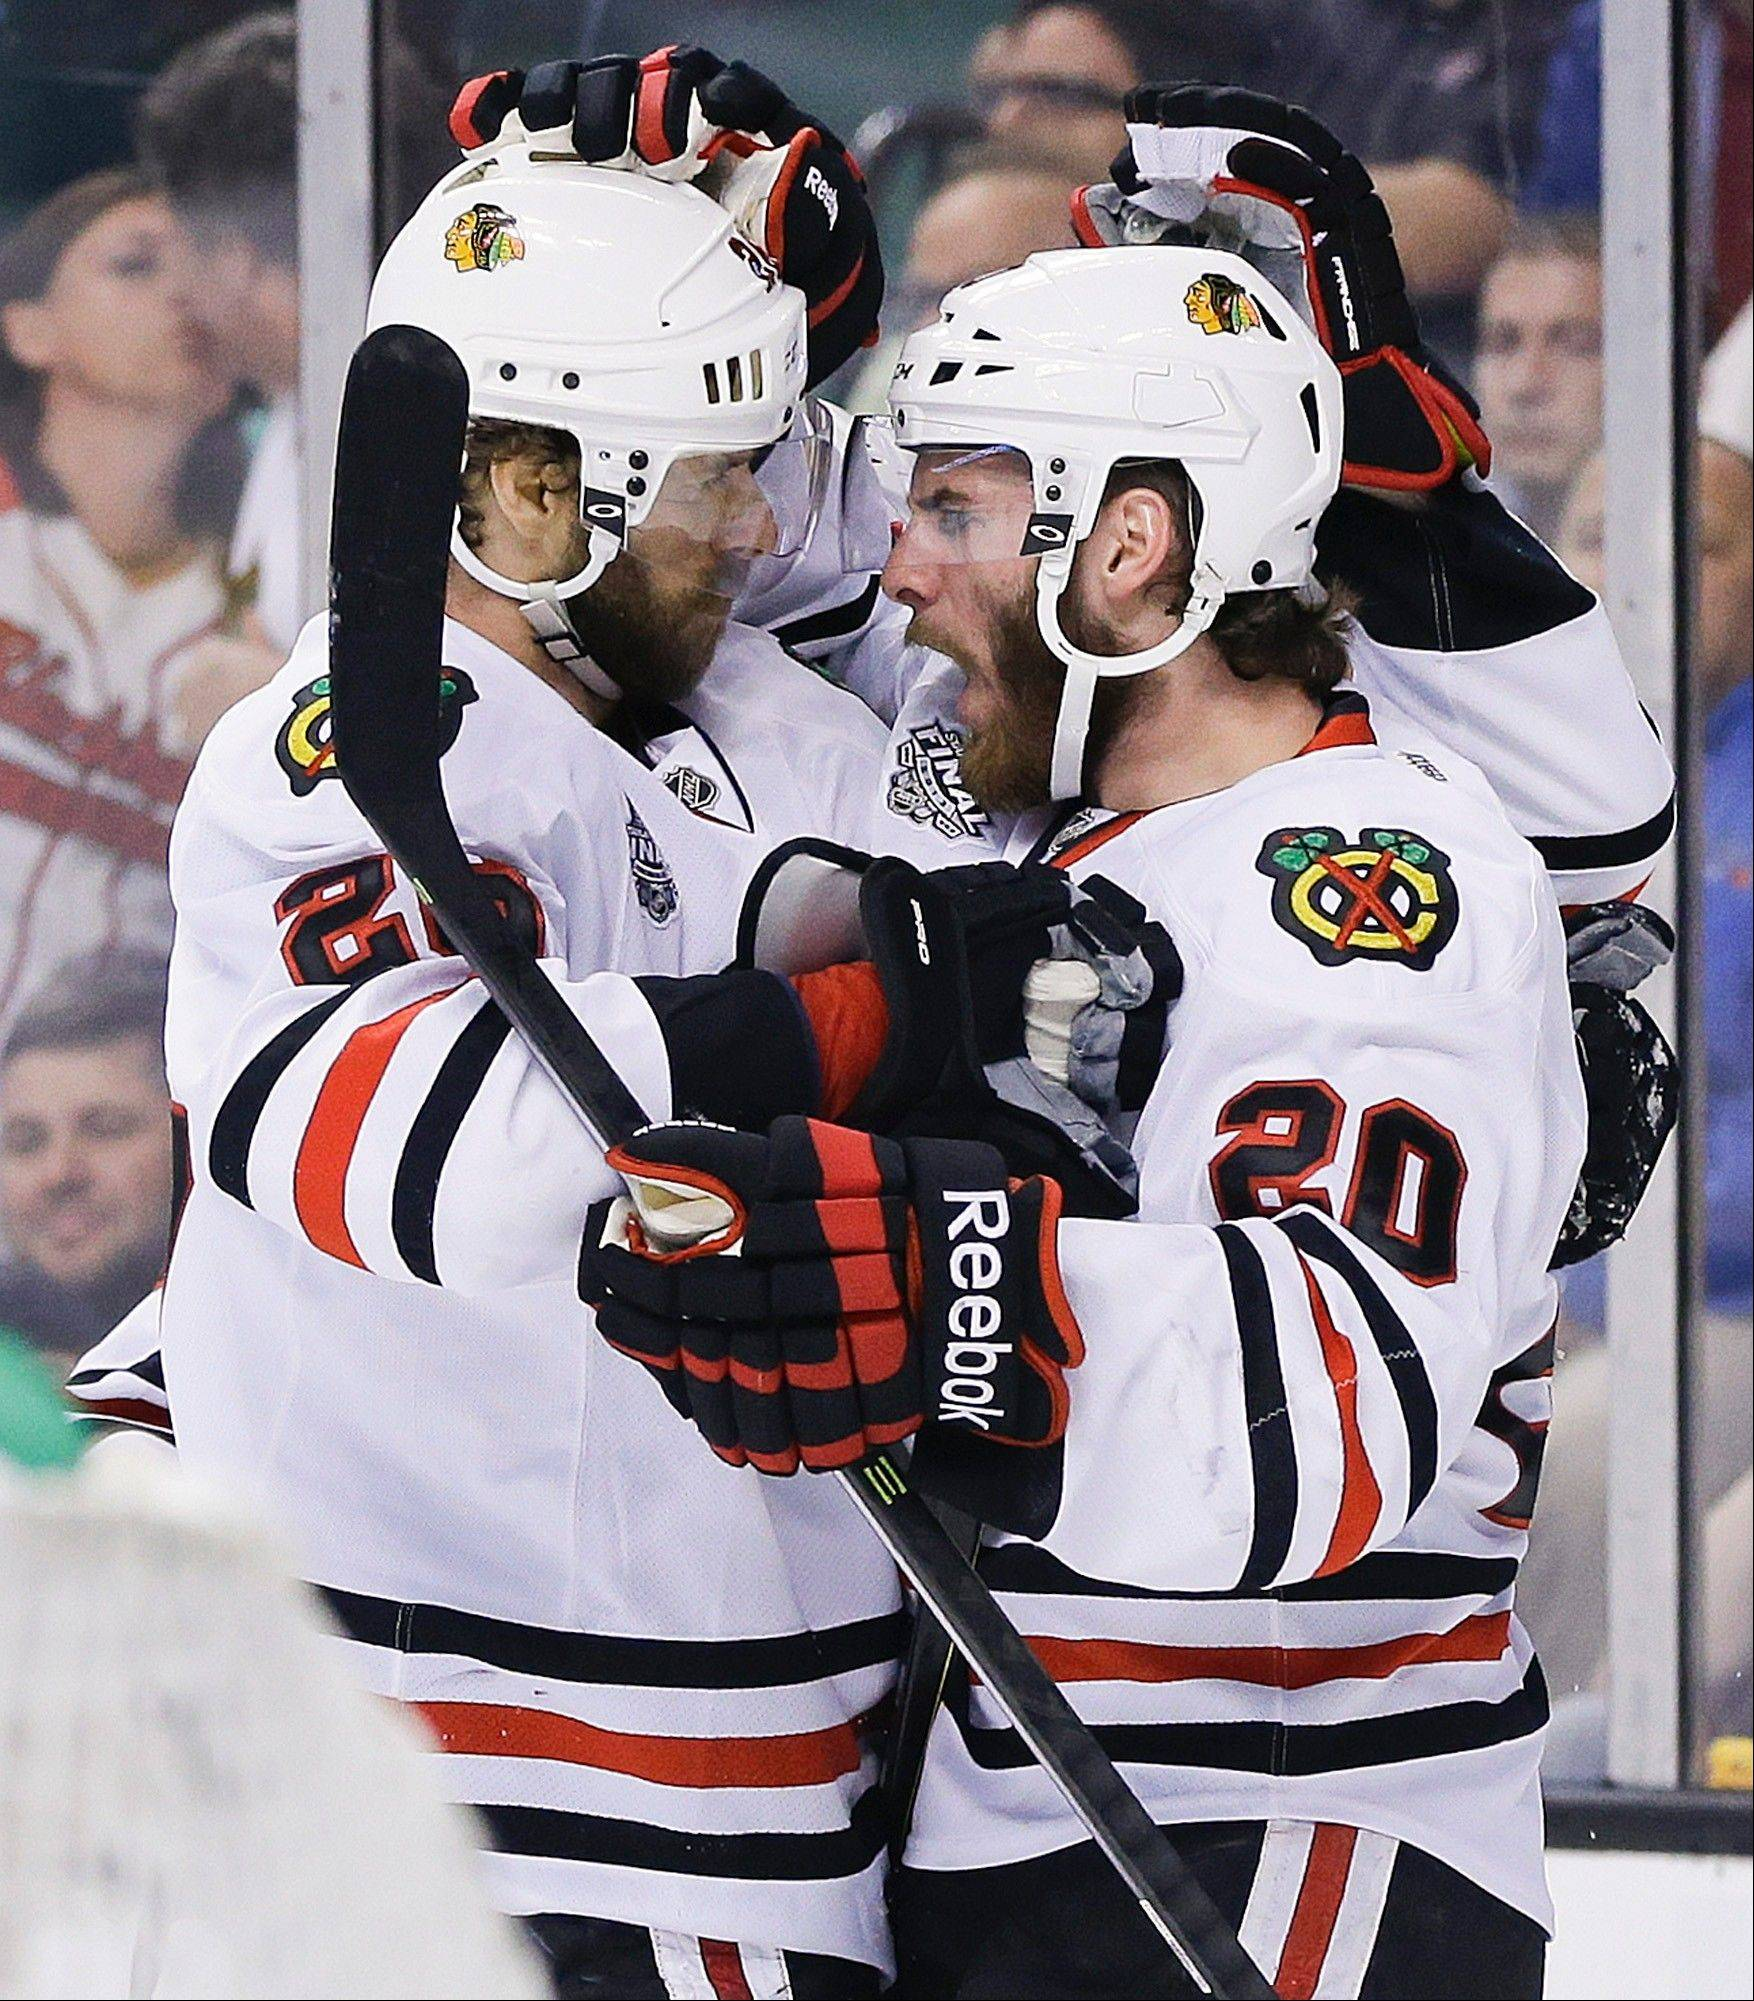 Chicago Blackhawks left wing Brandon Saad (20) congratulates Blackhawks center Michal Handzus, left, of Slovakia, during the first period in Game 4 of the NHL hockey Stanley Cup Finals.